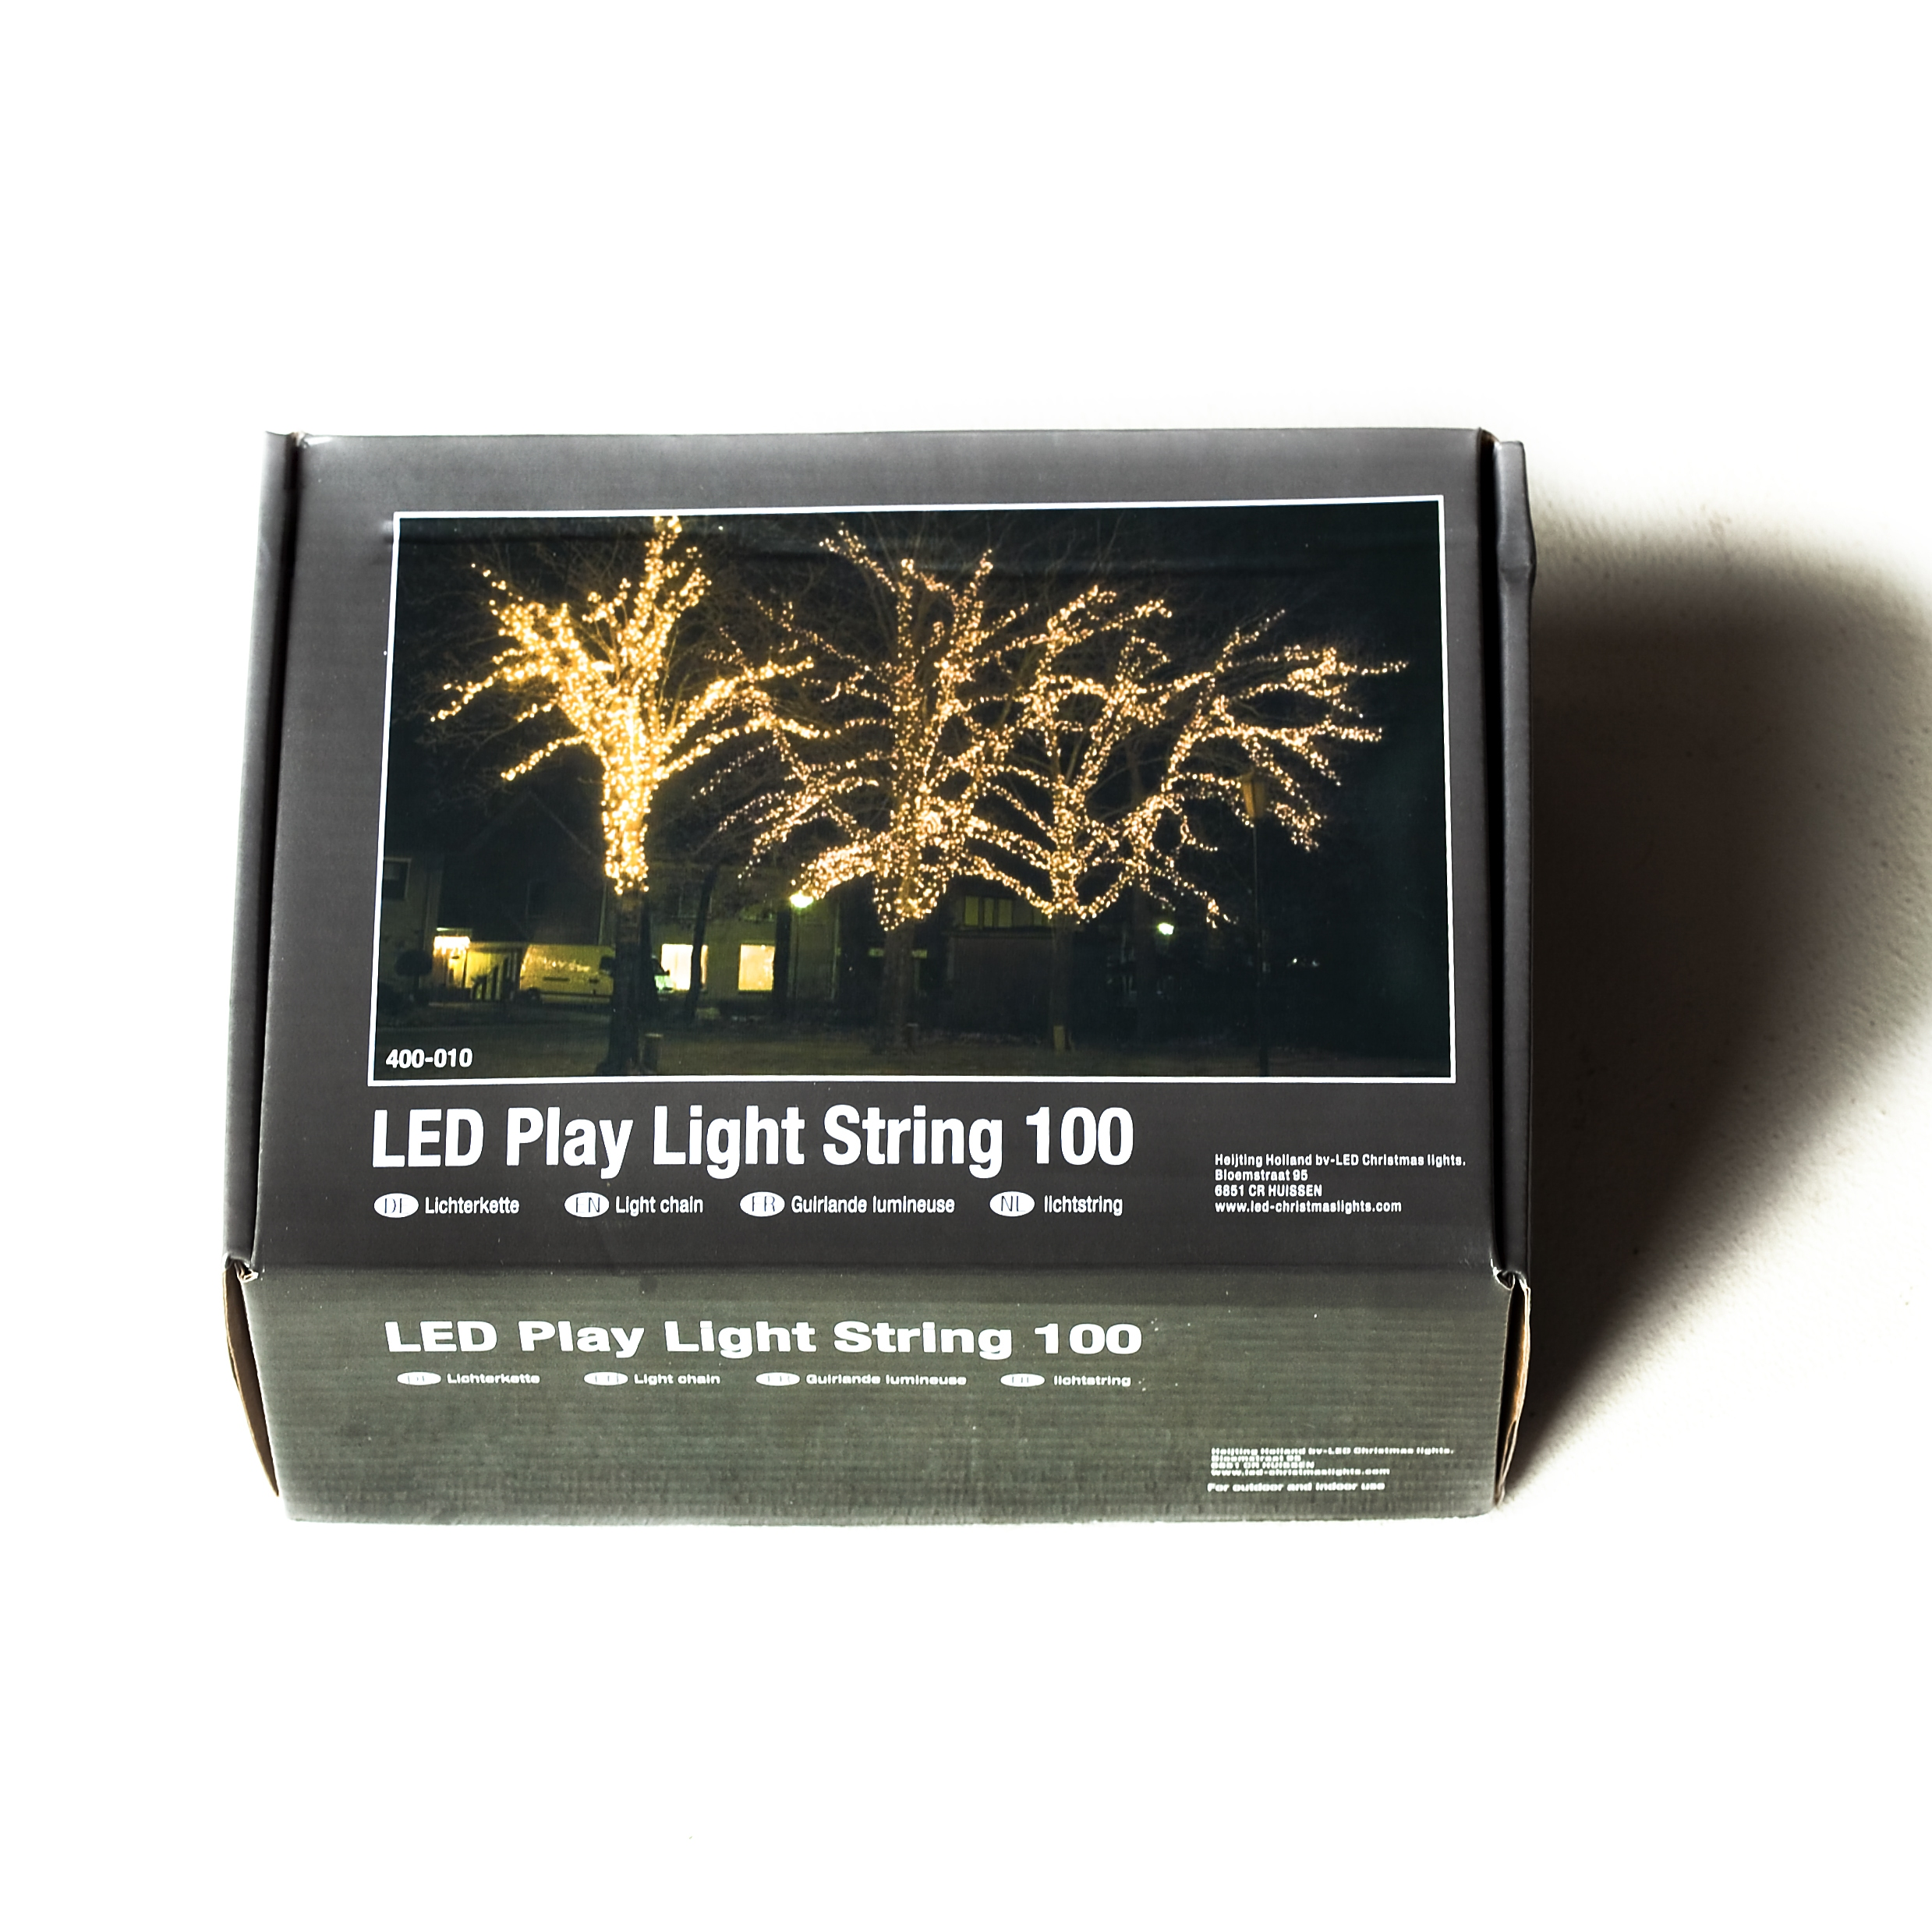 12 Volt Kerstverlichting Stringlights Led 100 Lamps 8 Meter Koppelbaar Ip 44